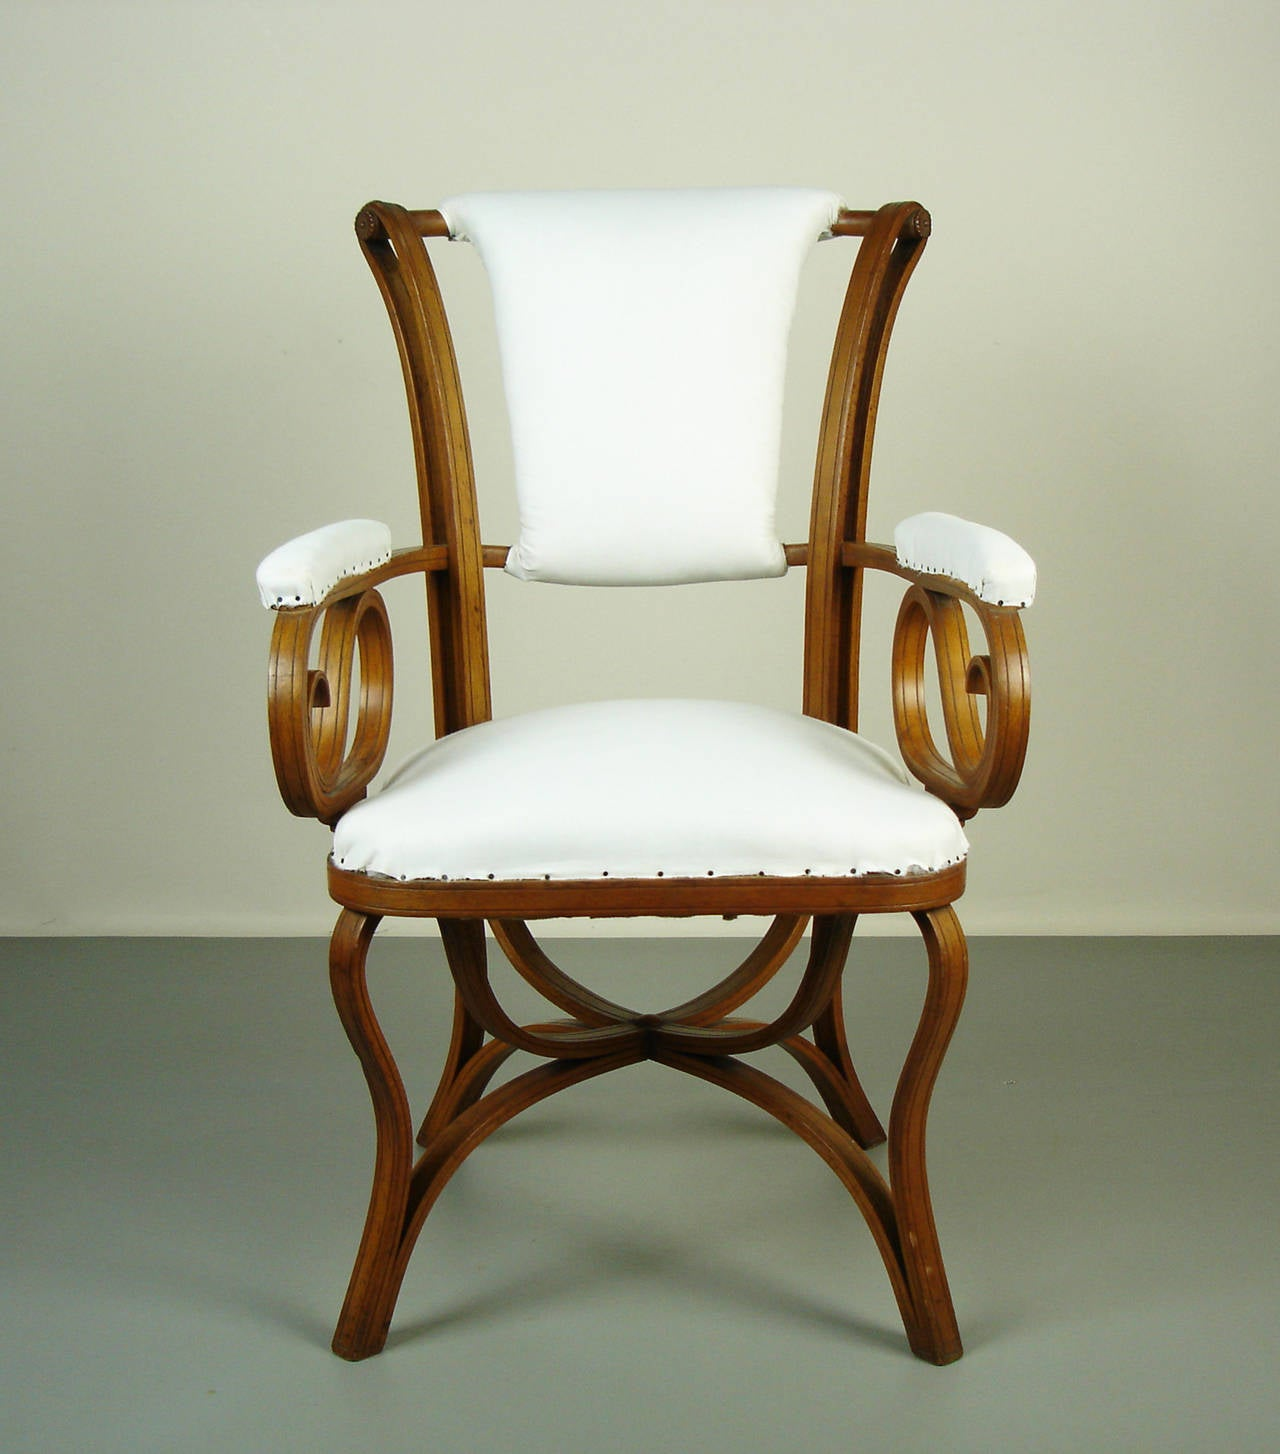 bent wood armchair by thonet at 1stdibs. Black Bedroom Furniture Sets. Home Design Ideas